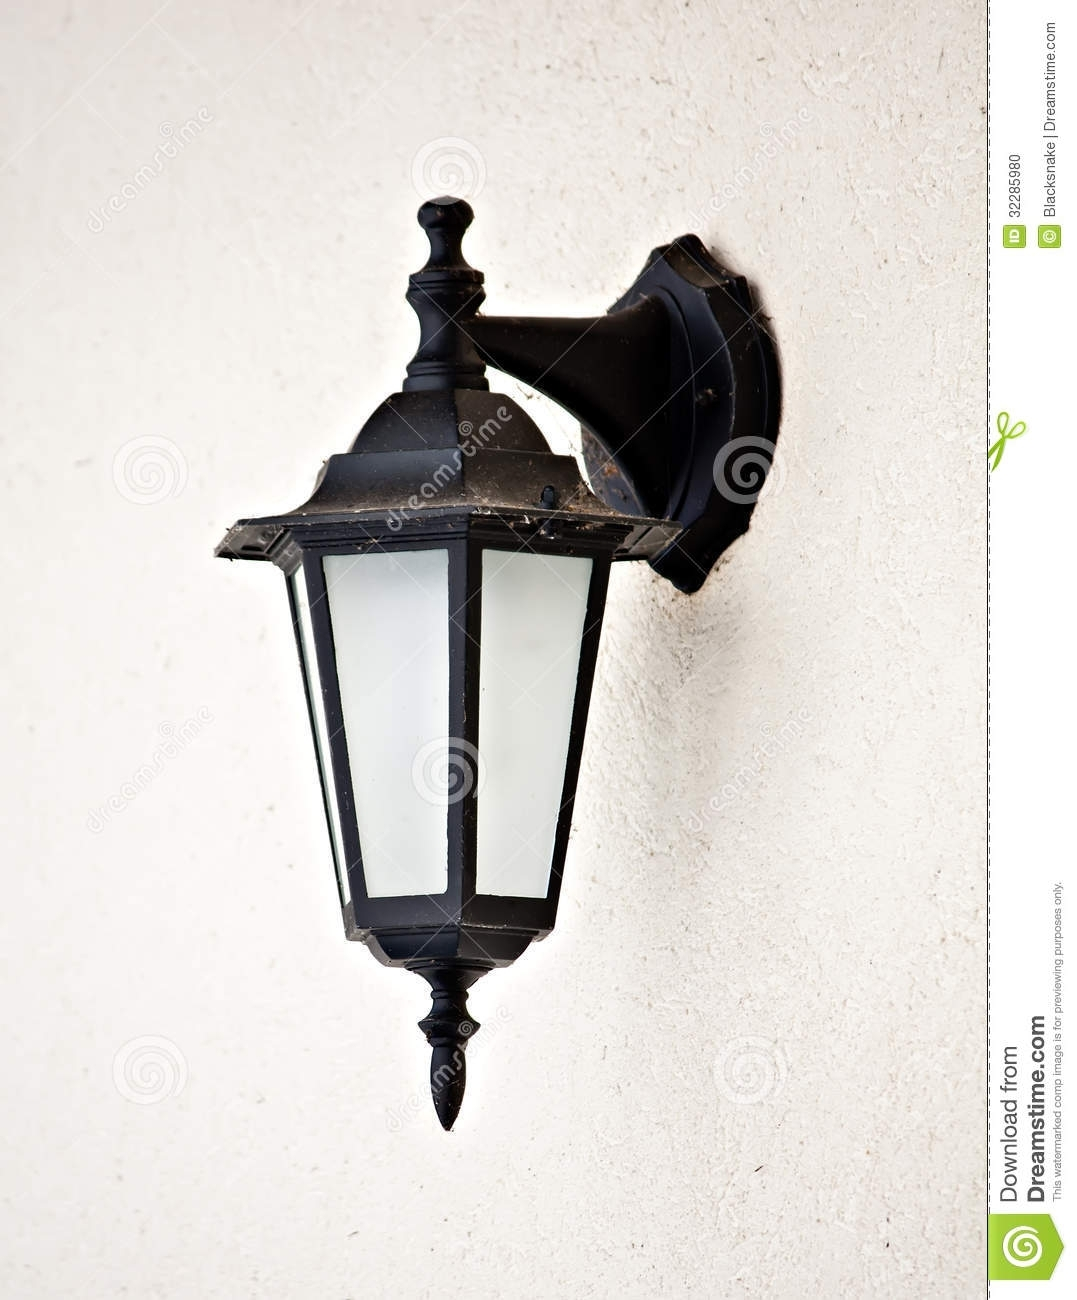 Old Vintage Outdoor Lantern Wall Hanging Lamp Stock Photo, Lamps With Regard To Vintage Outdoor Lanterns (View 2 of 20)